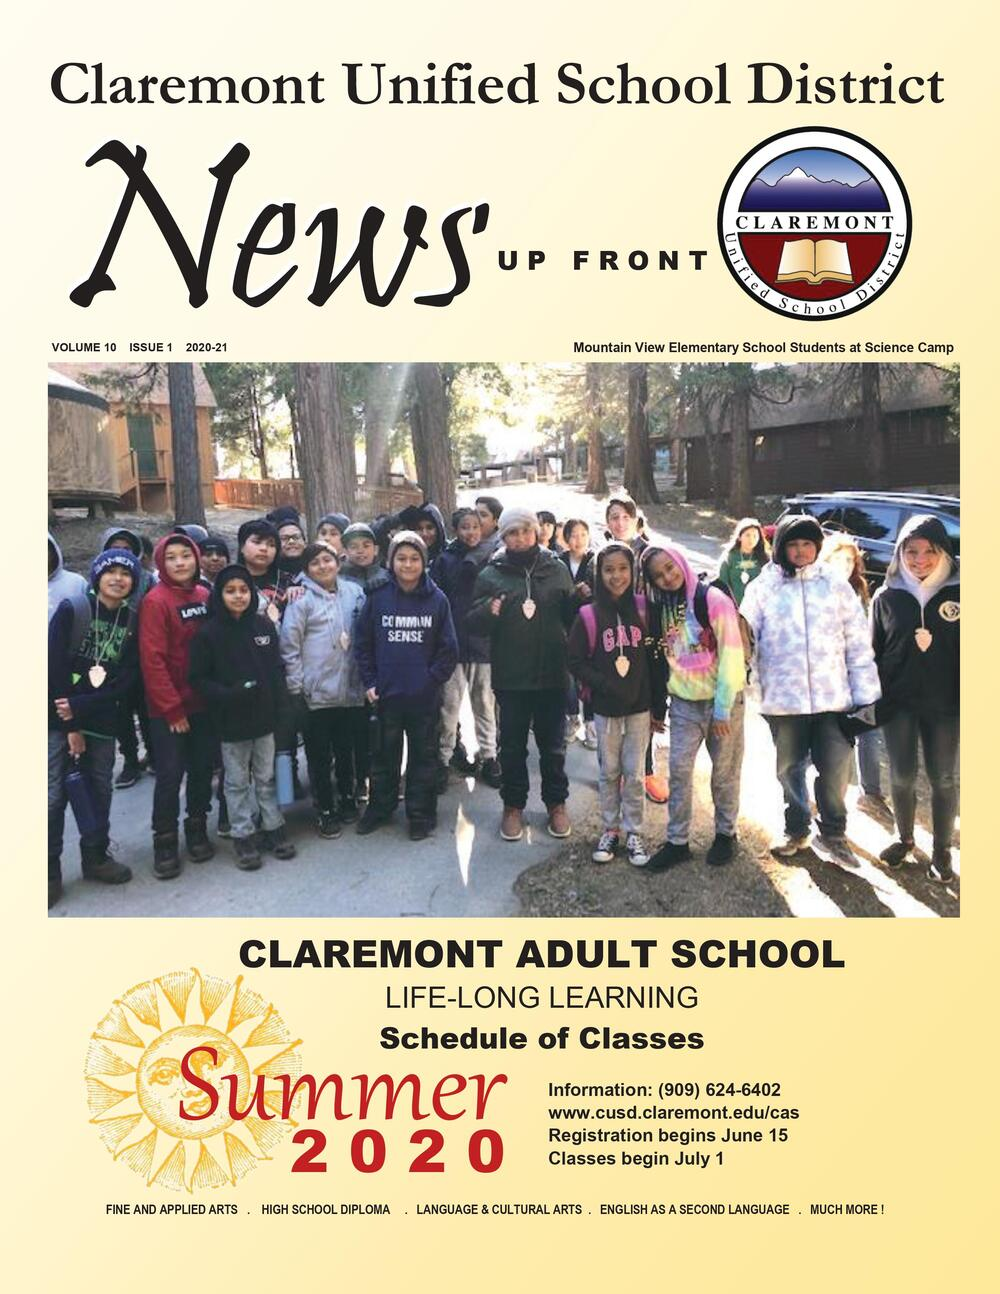 Claremont Adult School - Schedule of Classes